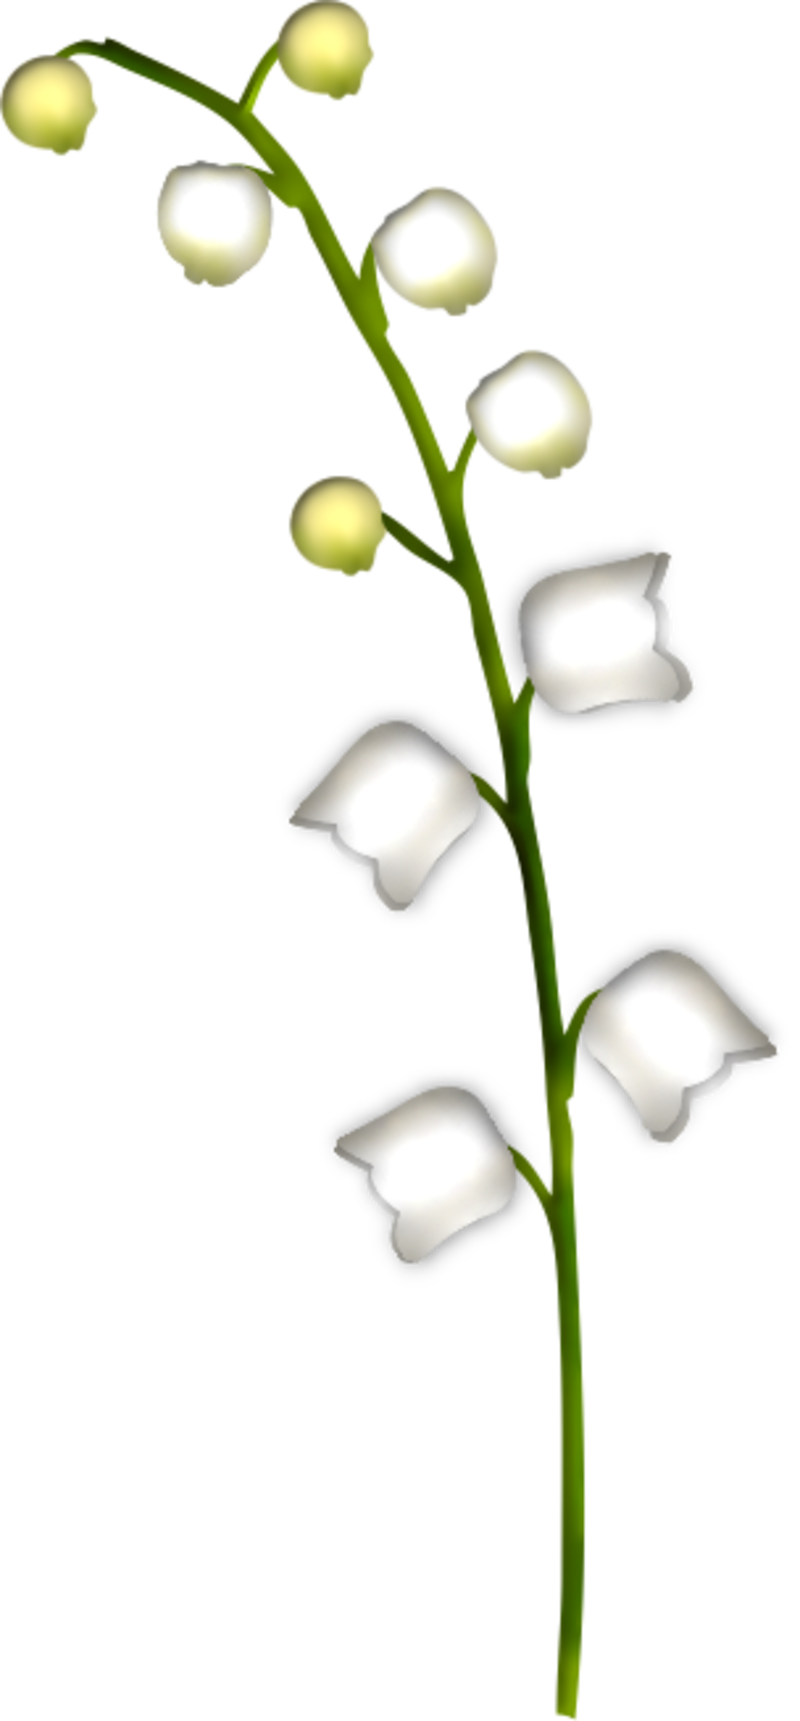 brin-de-muguet17a1.png